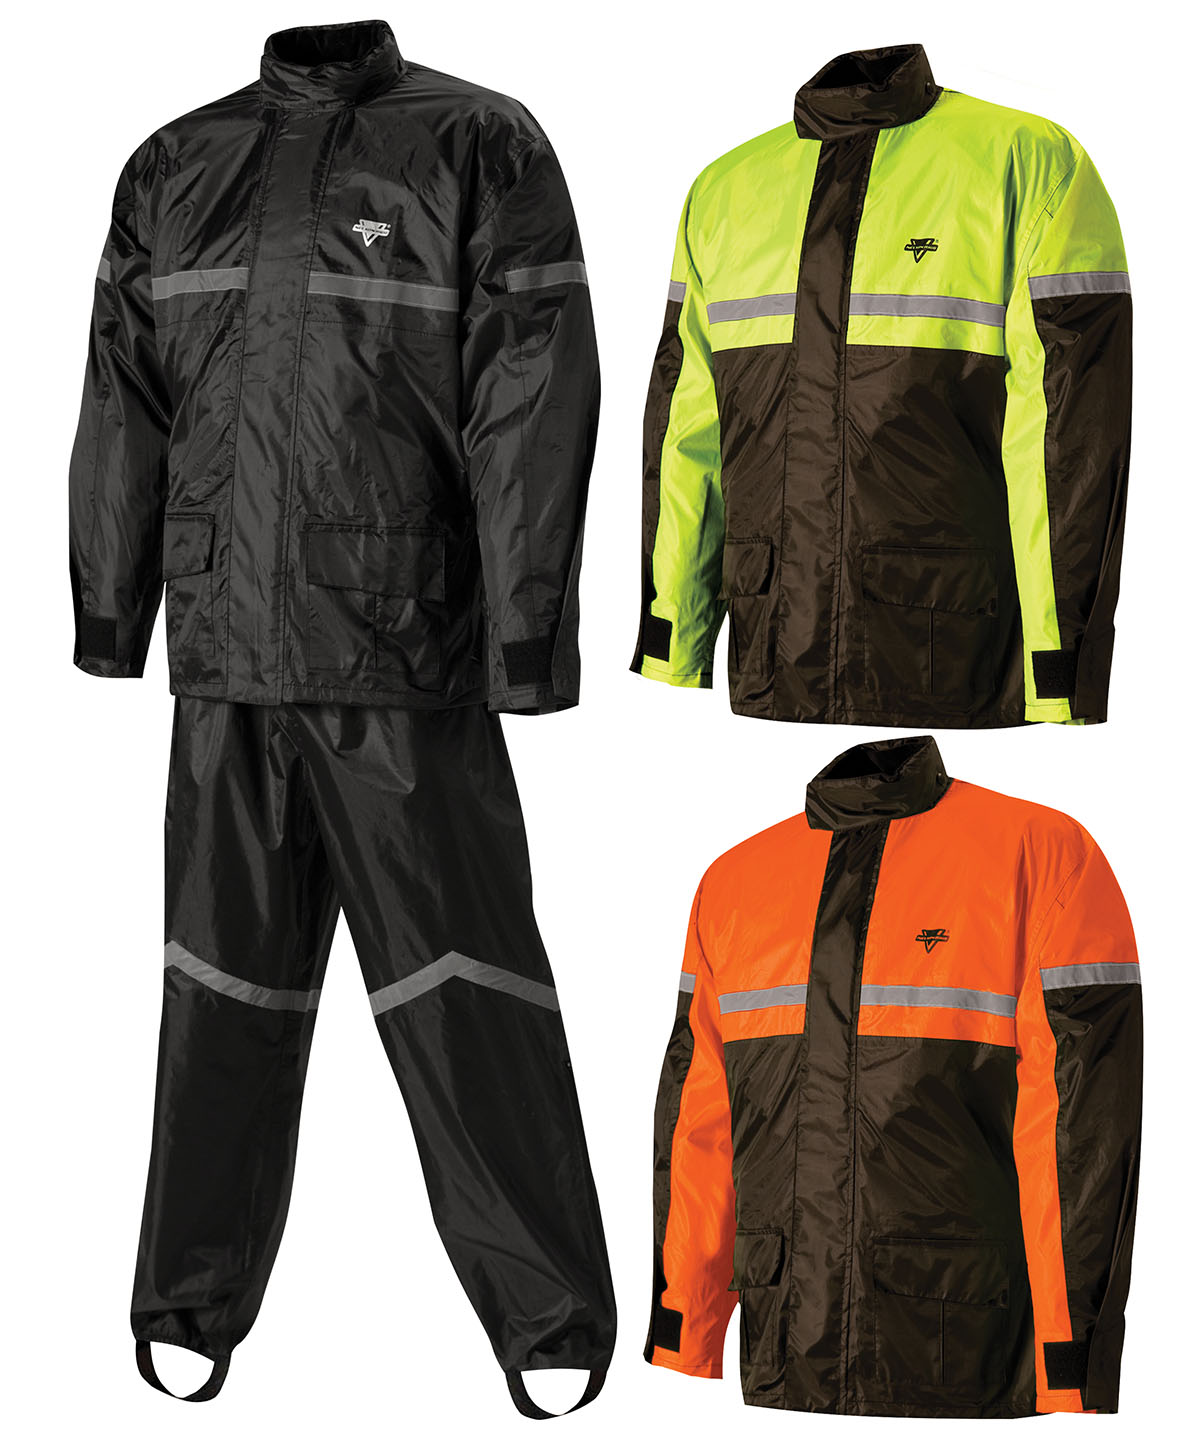 motor cycle rain suits Motorcycle rain gear comparison motorcycle rain gear comes in many types, designs and styles, though there are some commonalities most rain gear is designed to be worn over your normal riding apparel, except for gloves made specifically for the rain.